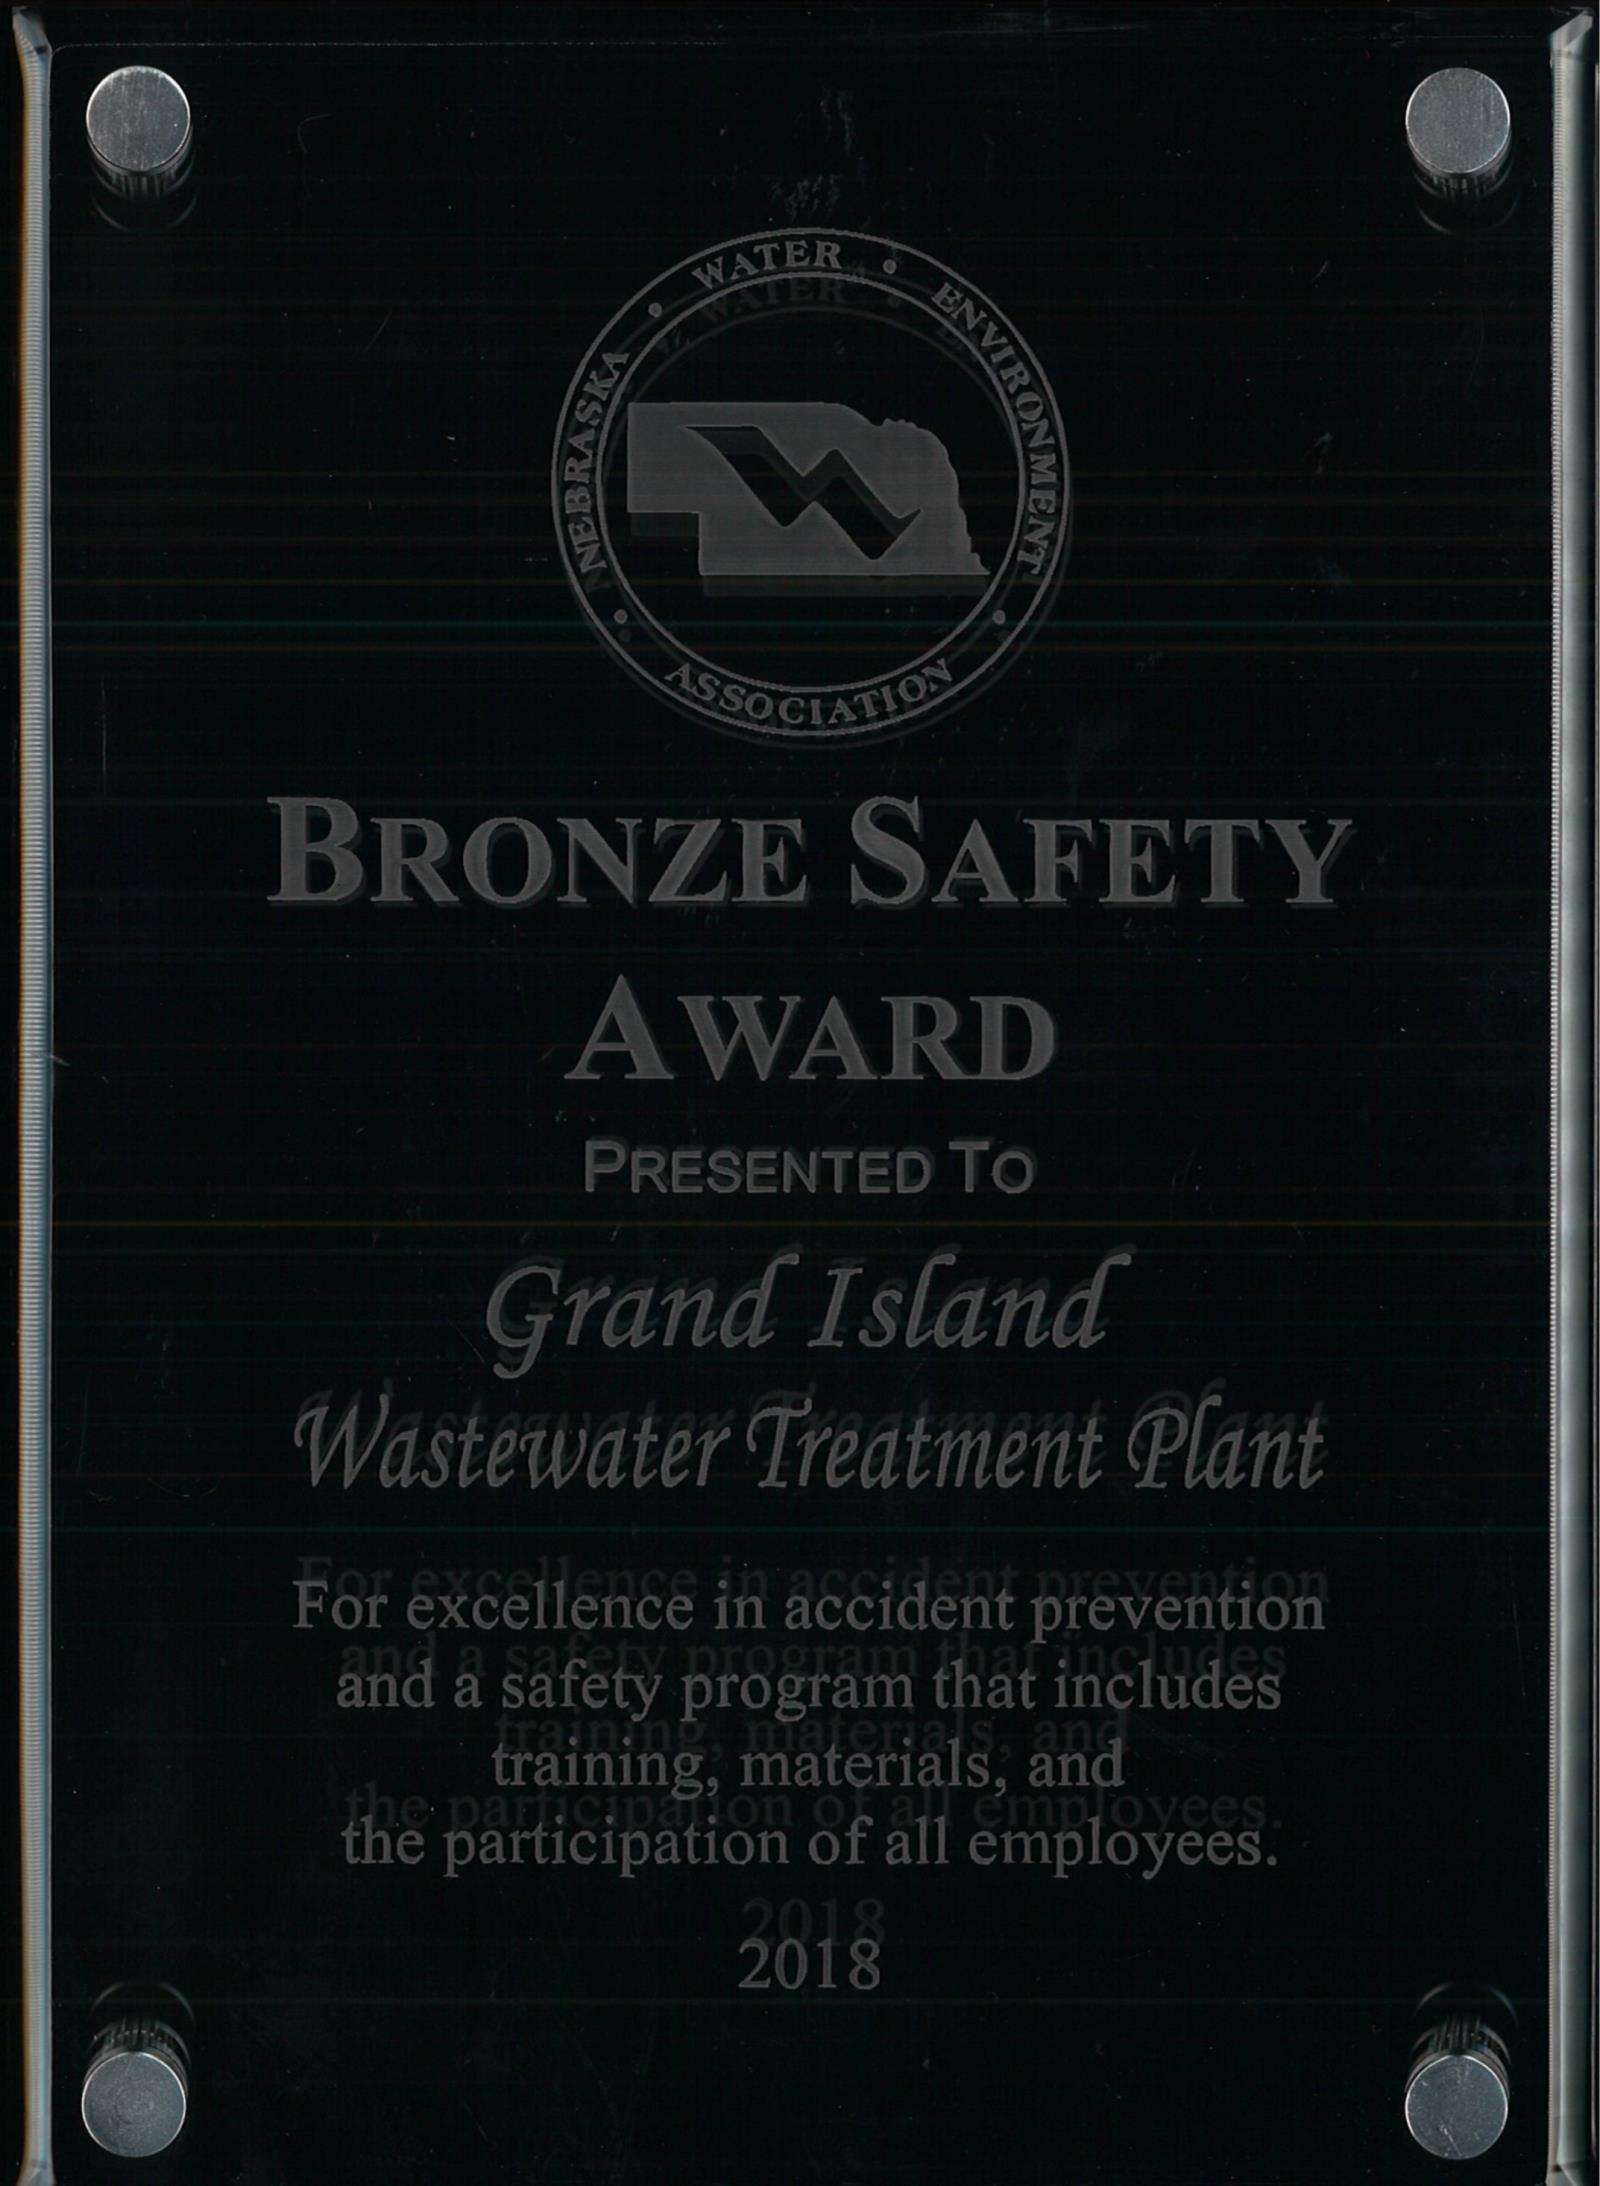 Bronze Safety Award